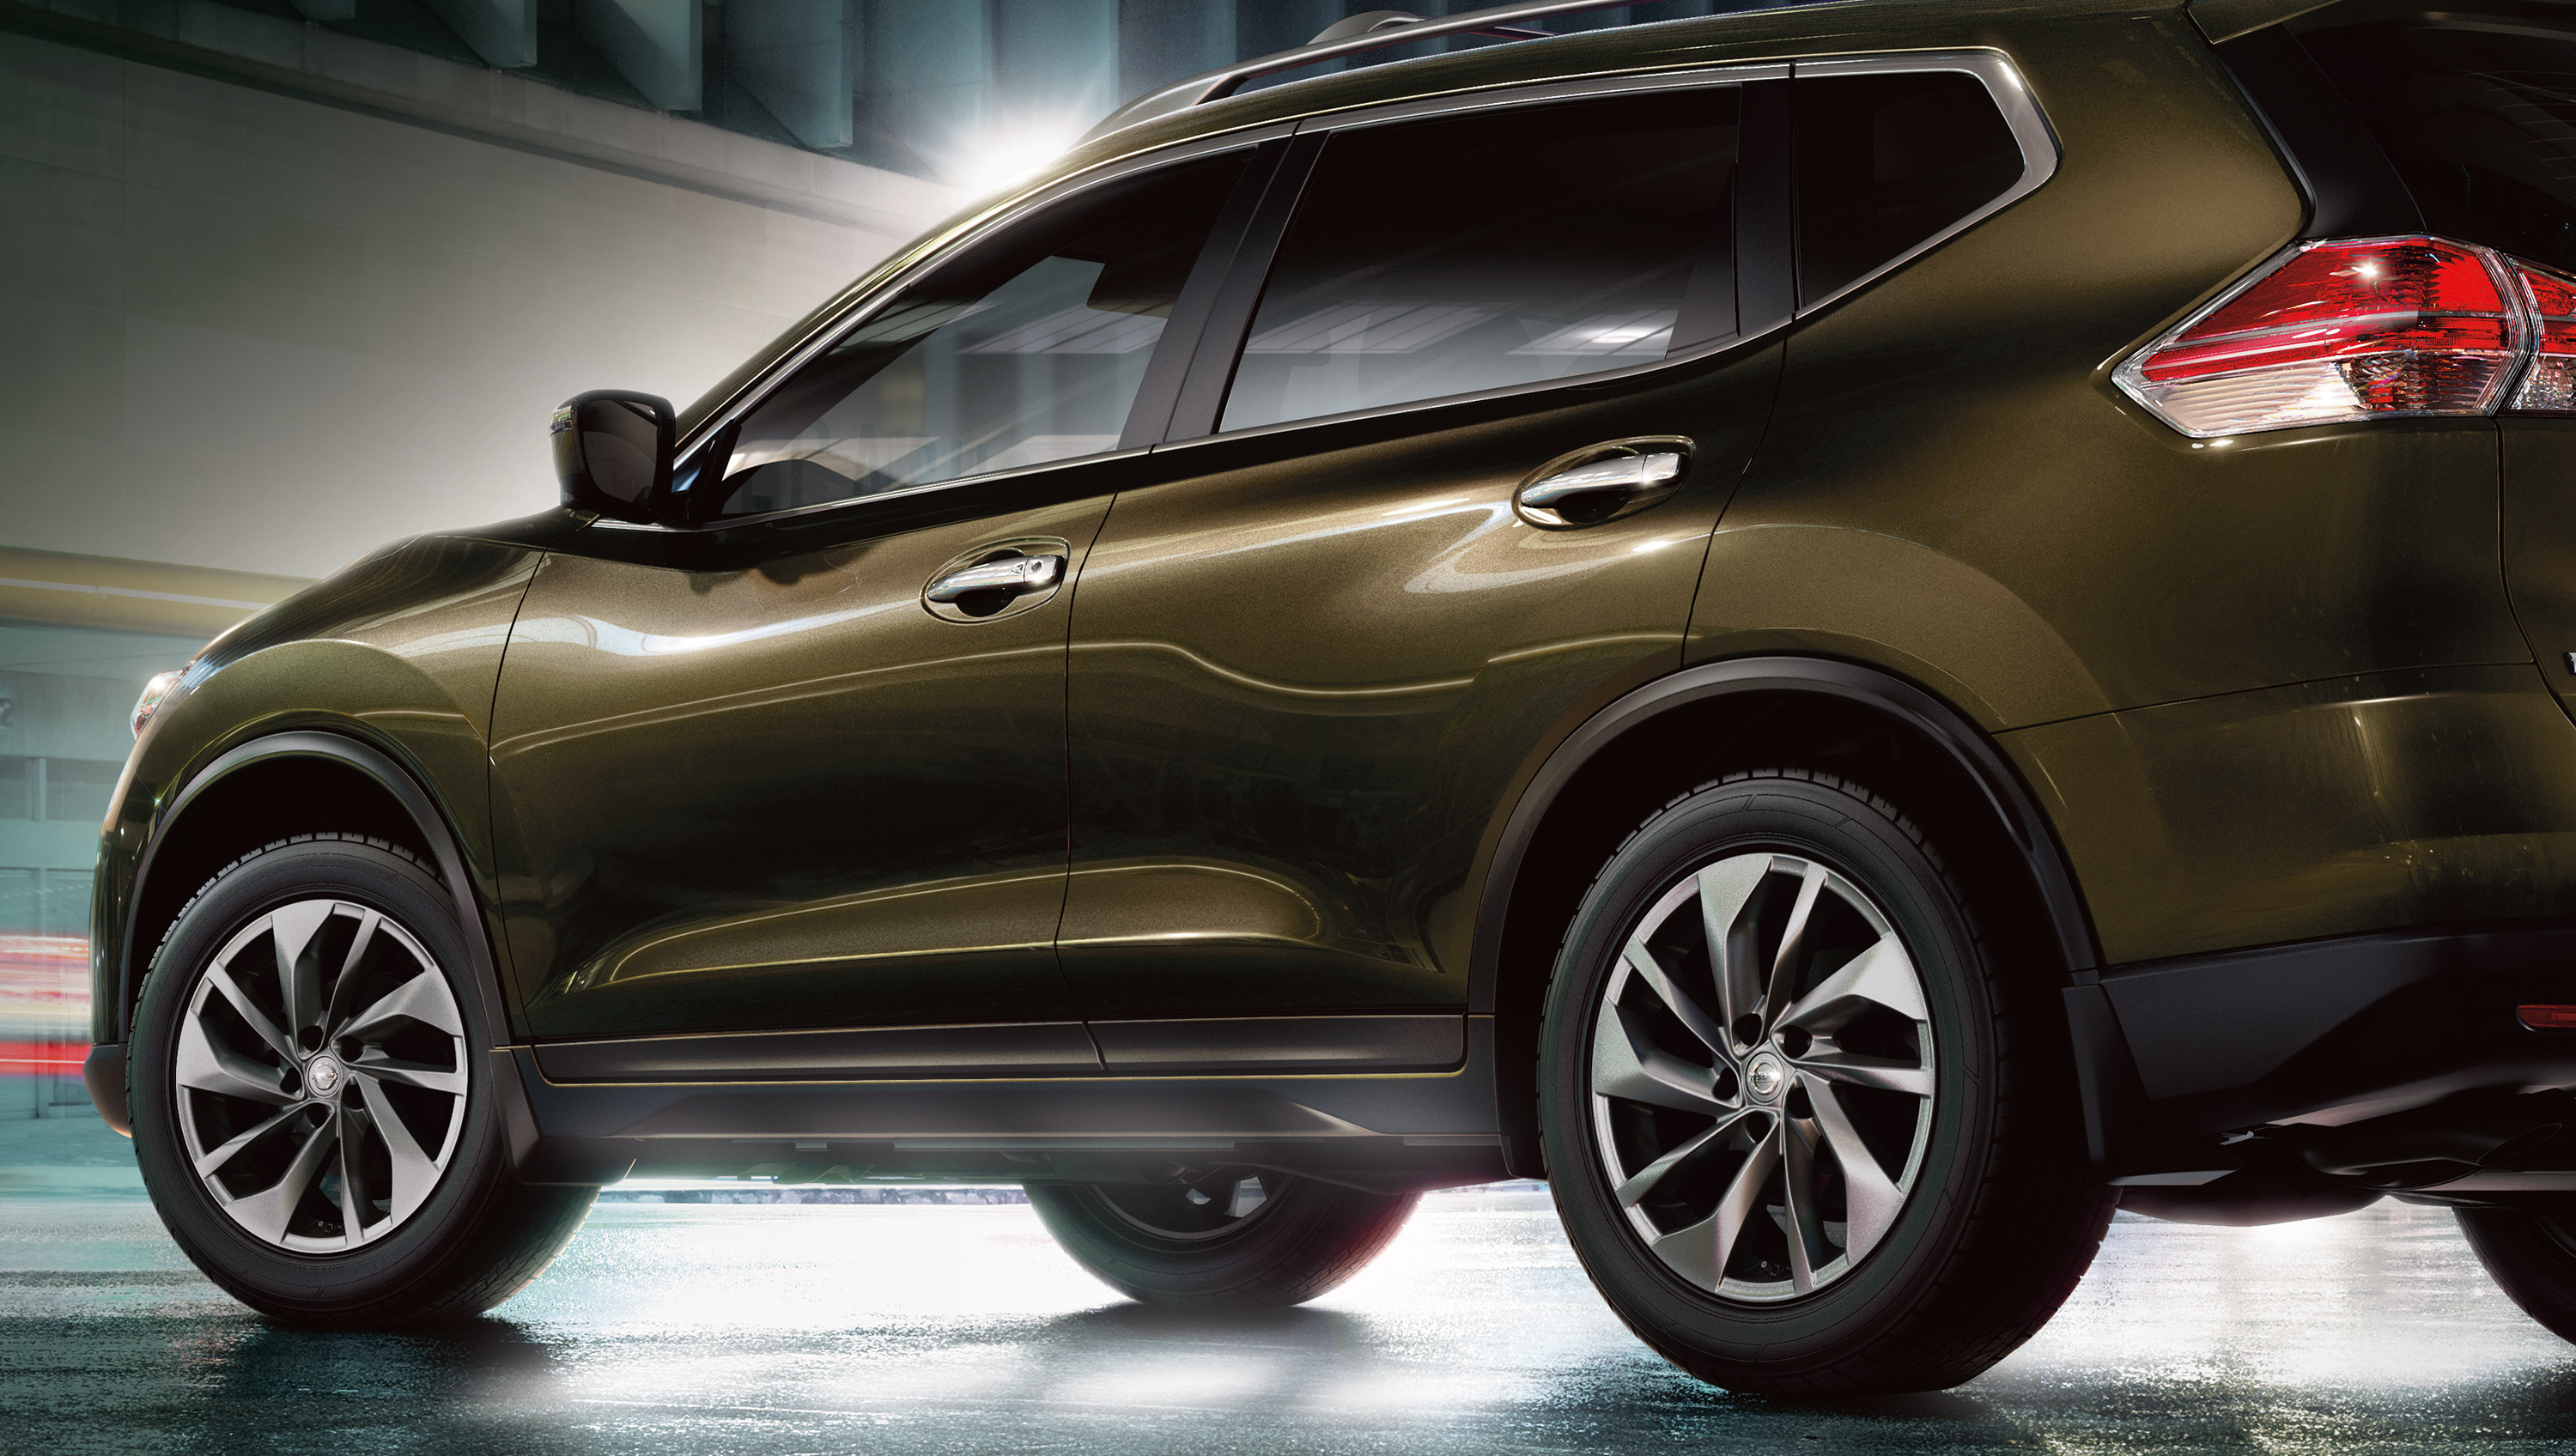 2016 Nissan Rogue Overview - The News Wheel